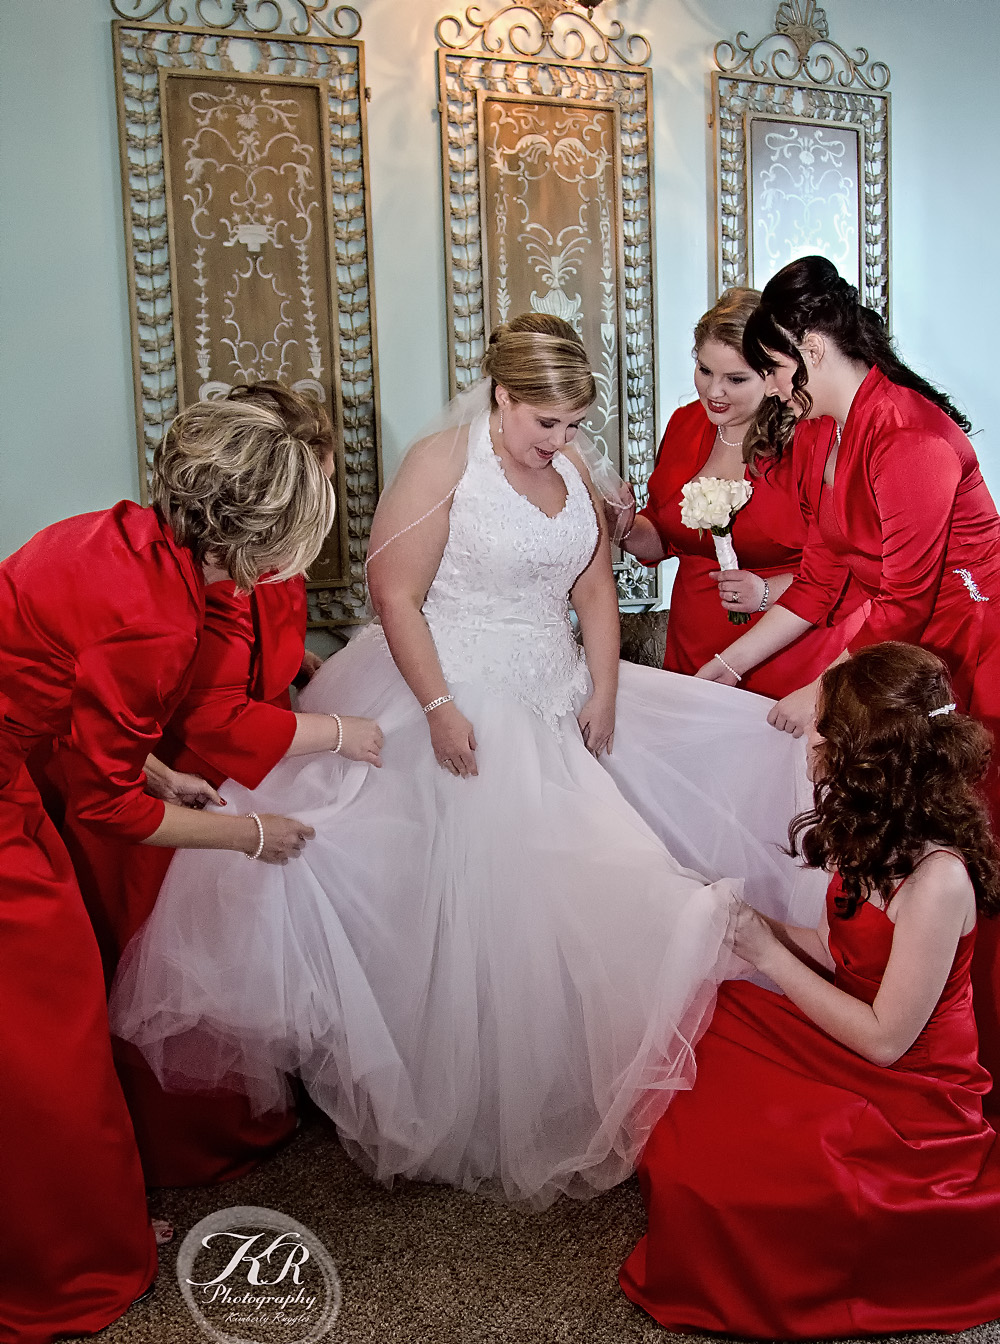 Bridal party touch up, KRphotography weddings